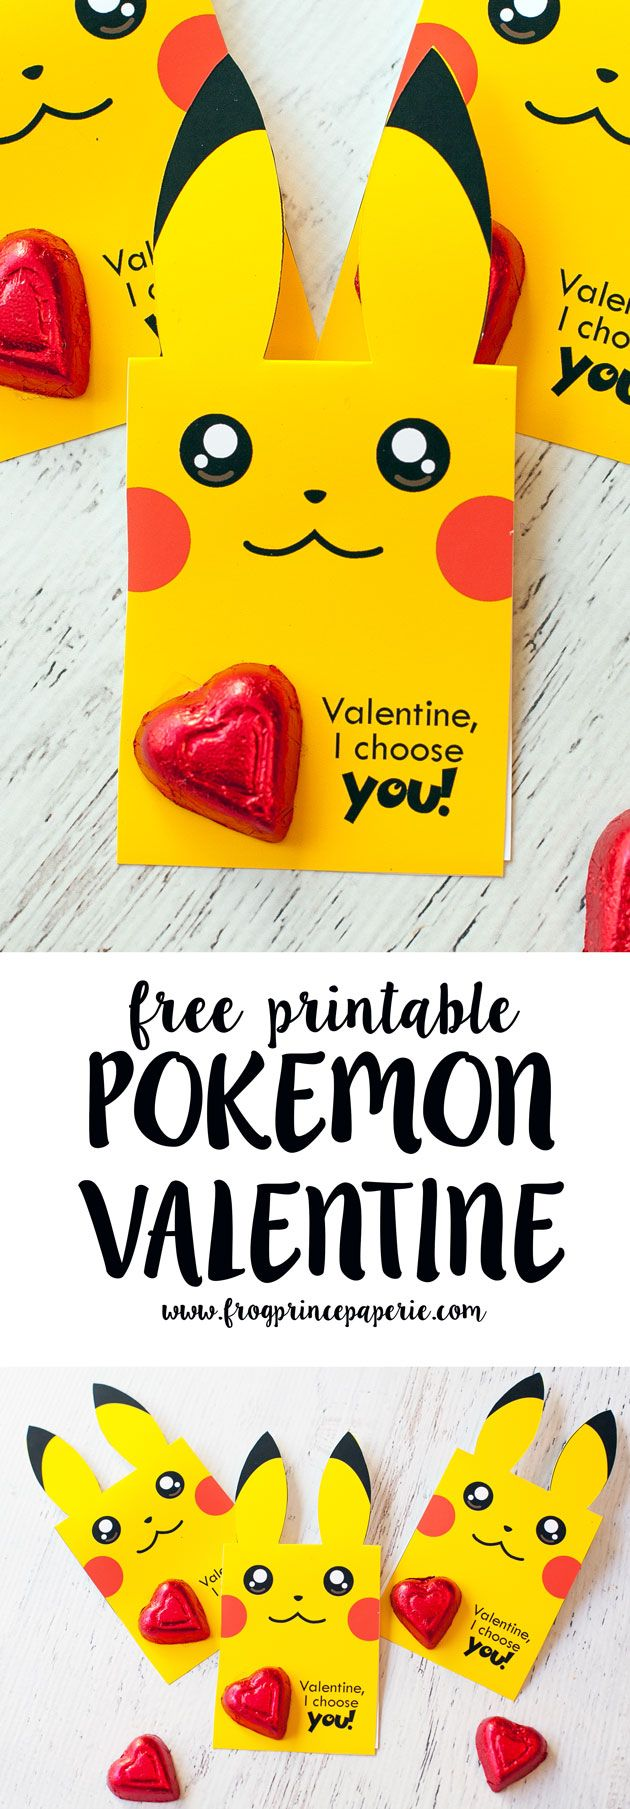 Pick up an easy to assemble free printable Pokemon Valentine that's perfect for Pokemon fans who have classroom Valentines to hand out this year!